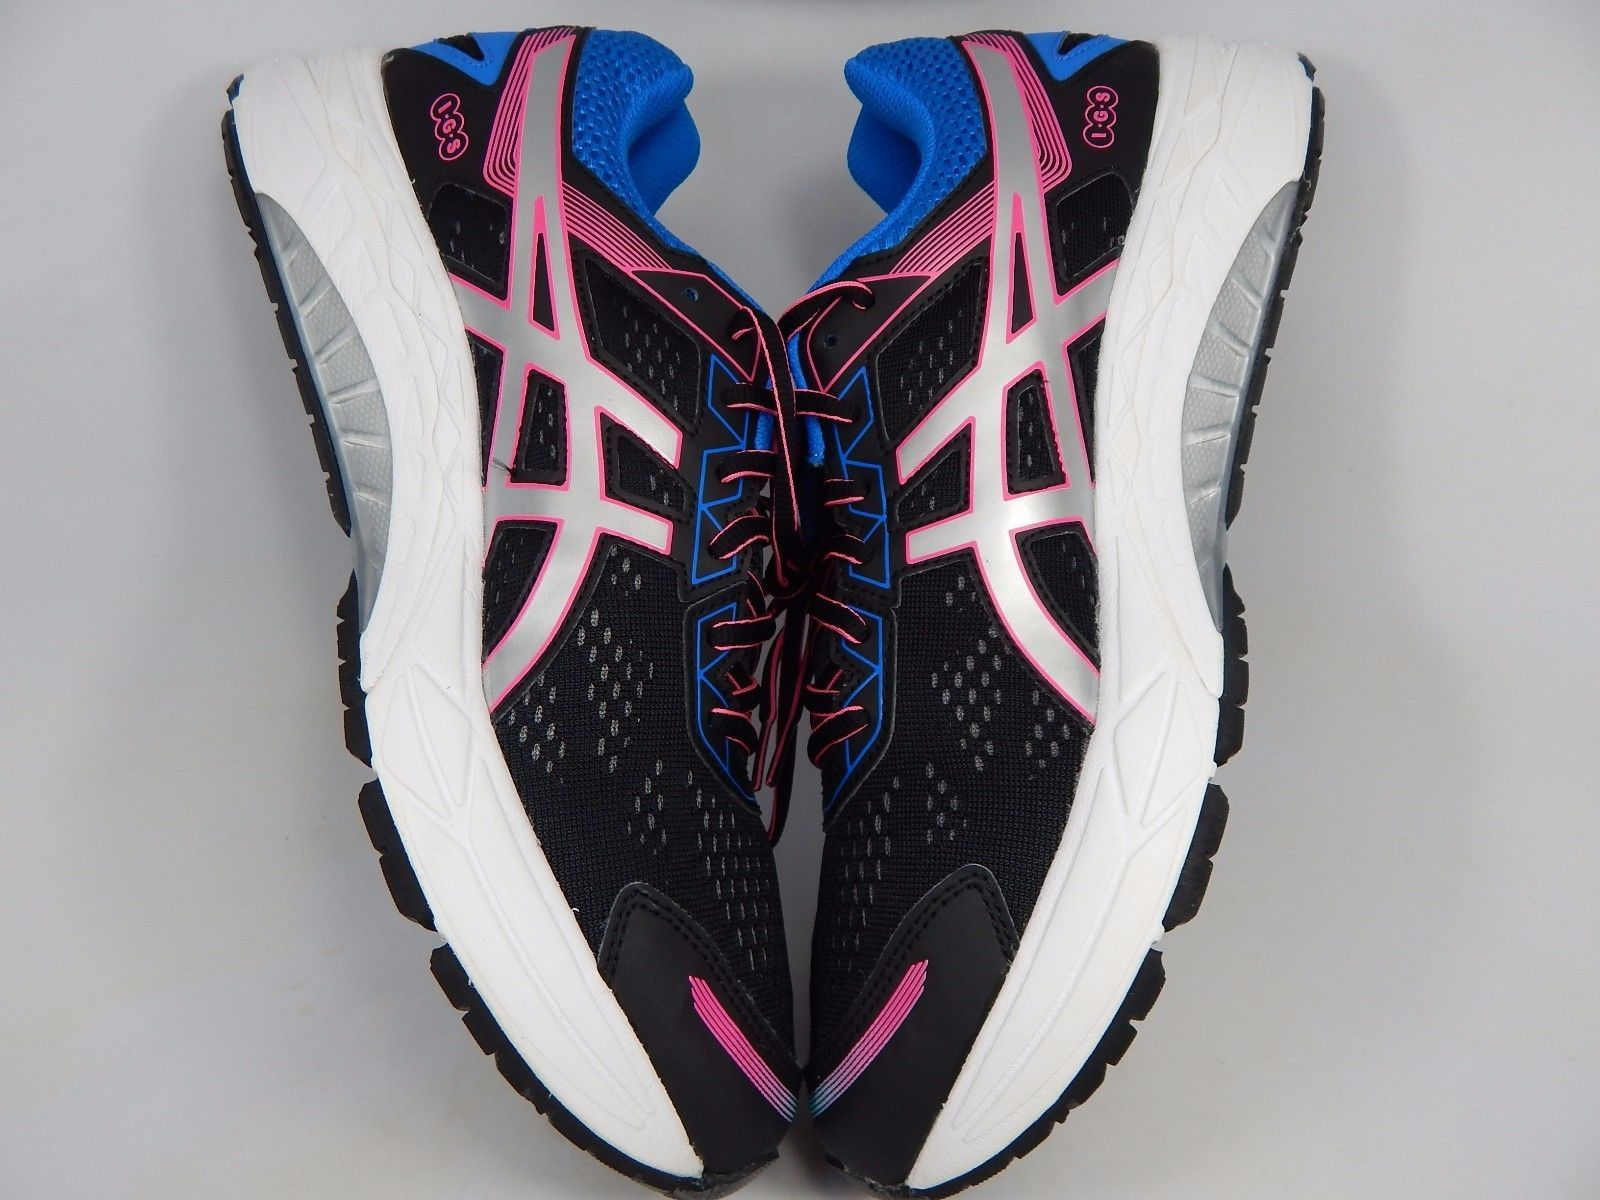 Asics Gel Foritude 7 Women's Running Shoes Size US 12 M (B) EU 44.5 Black T5G7N